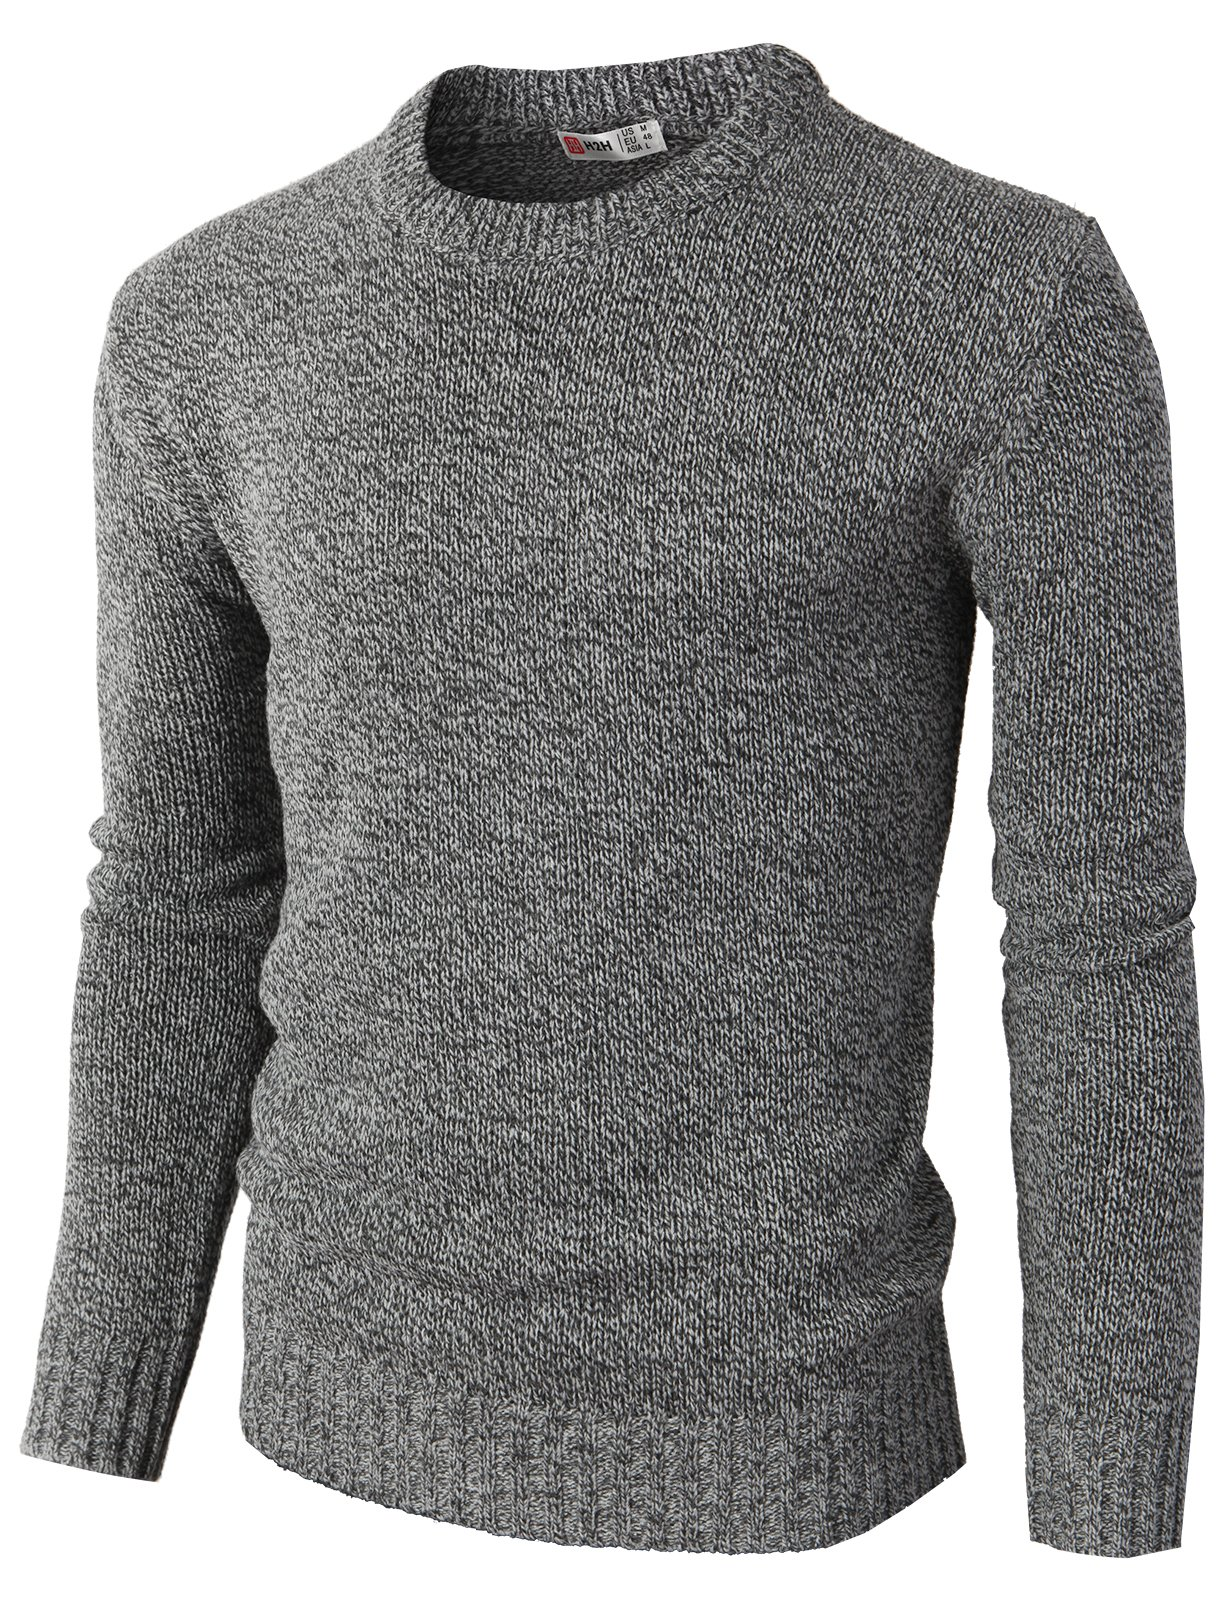 H2H Men's Perfect Slim Fit V-Neck Sweater Charcoal US M/Asia L (KMOSWL0122)